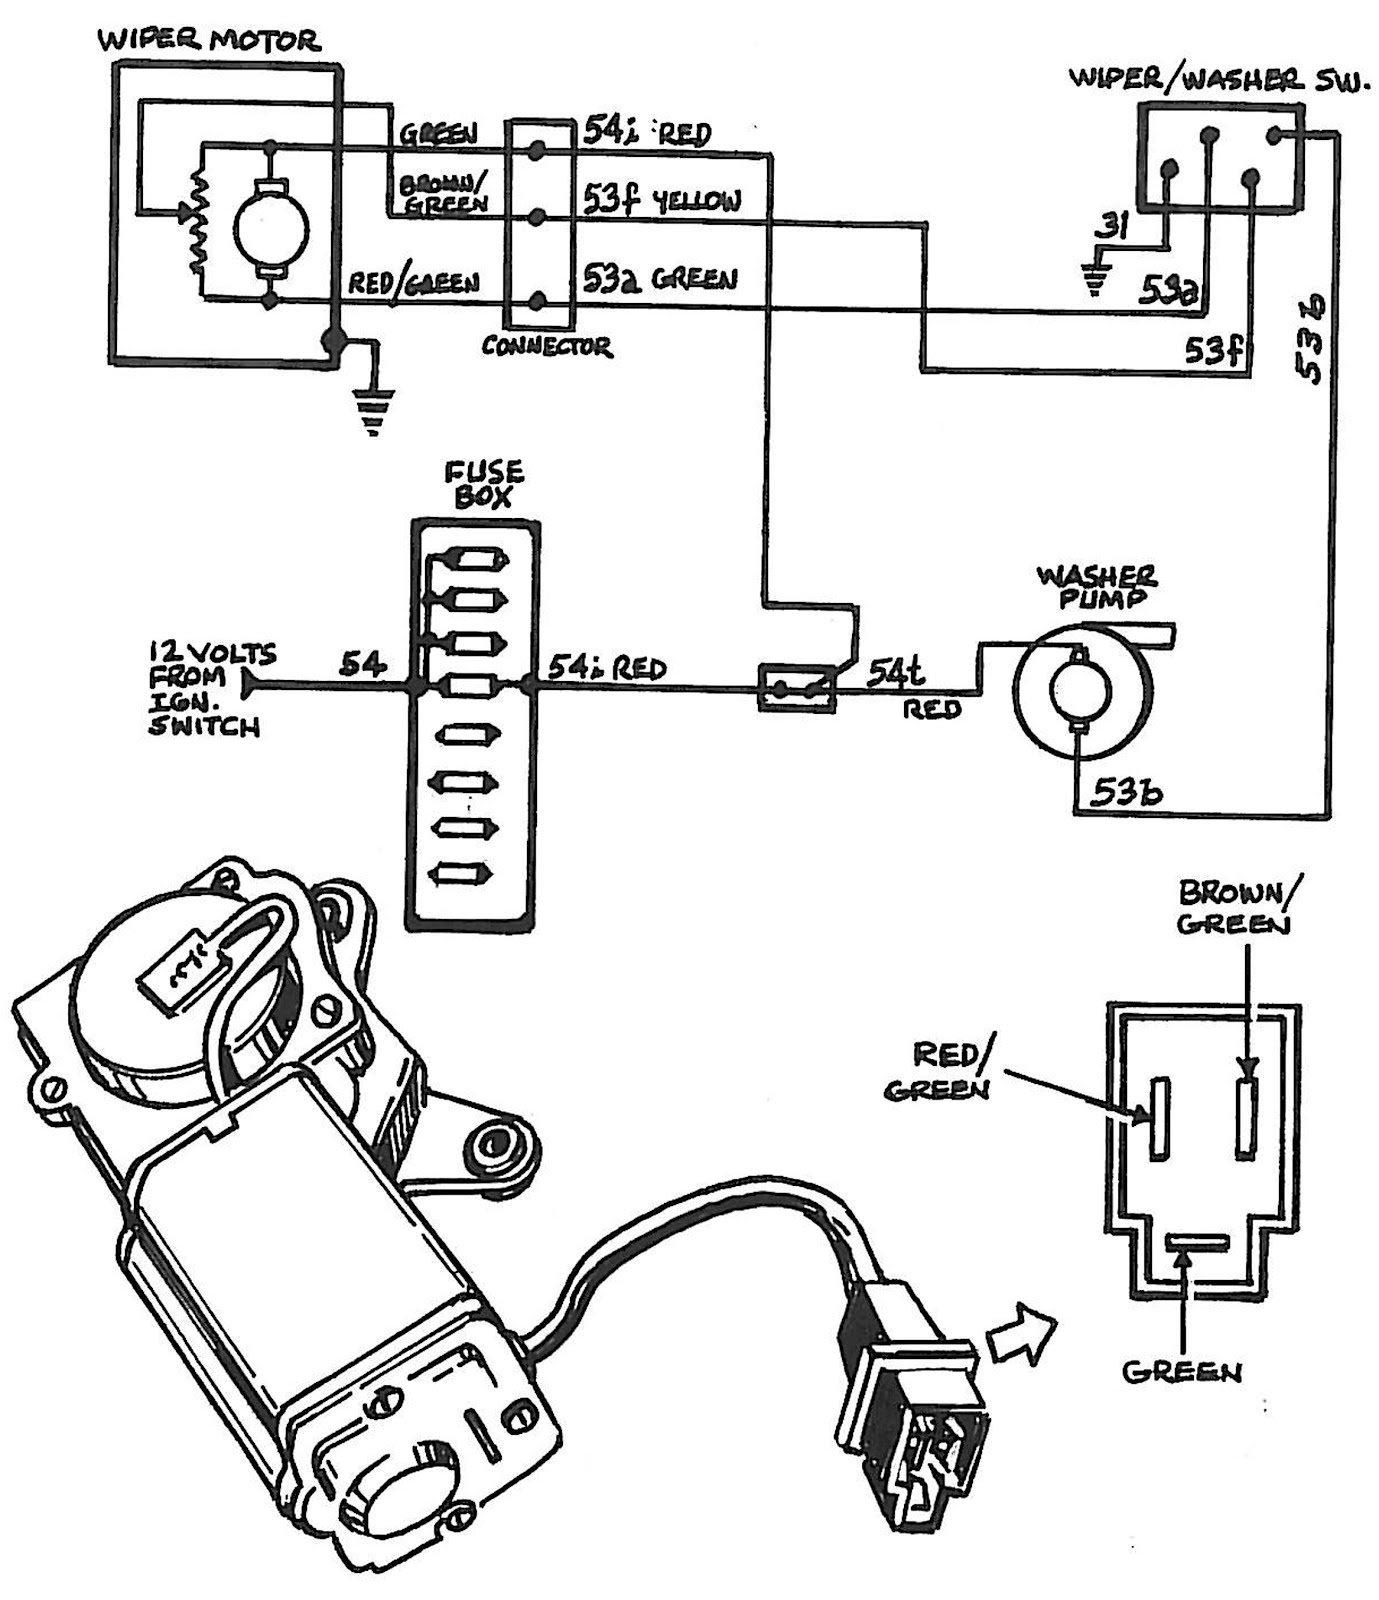 Diagram Of Wiring For 99 Ford F 250 Wiper Motor, Diagram